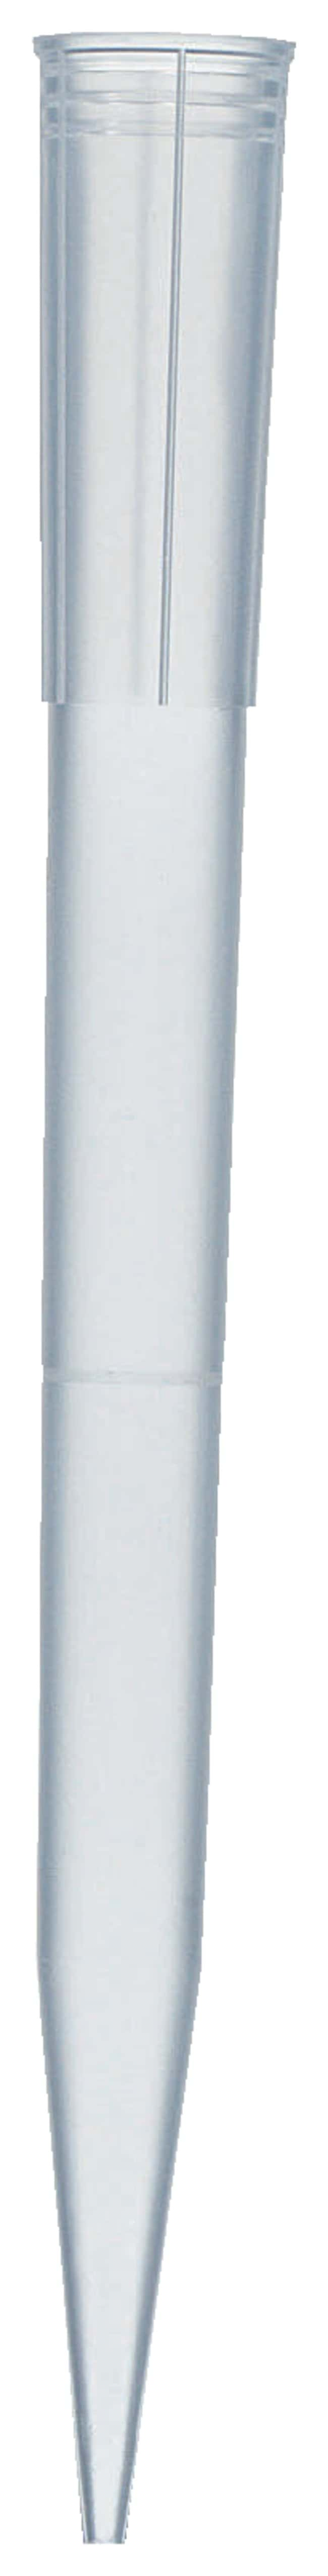 Fisherbrand™ Maxi Pipet Tips